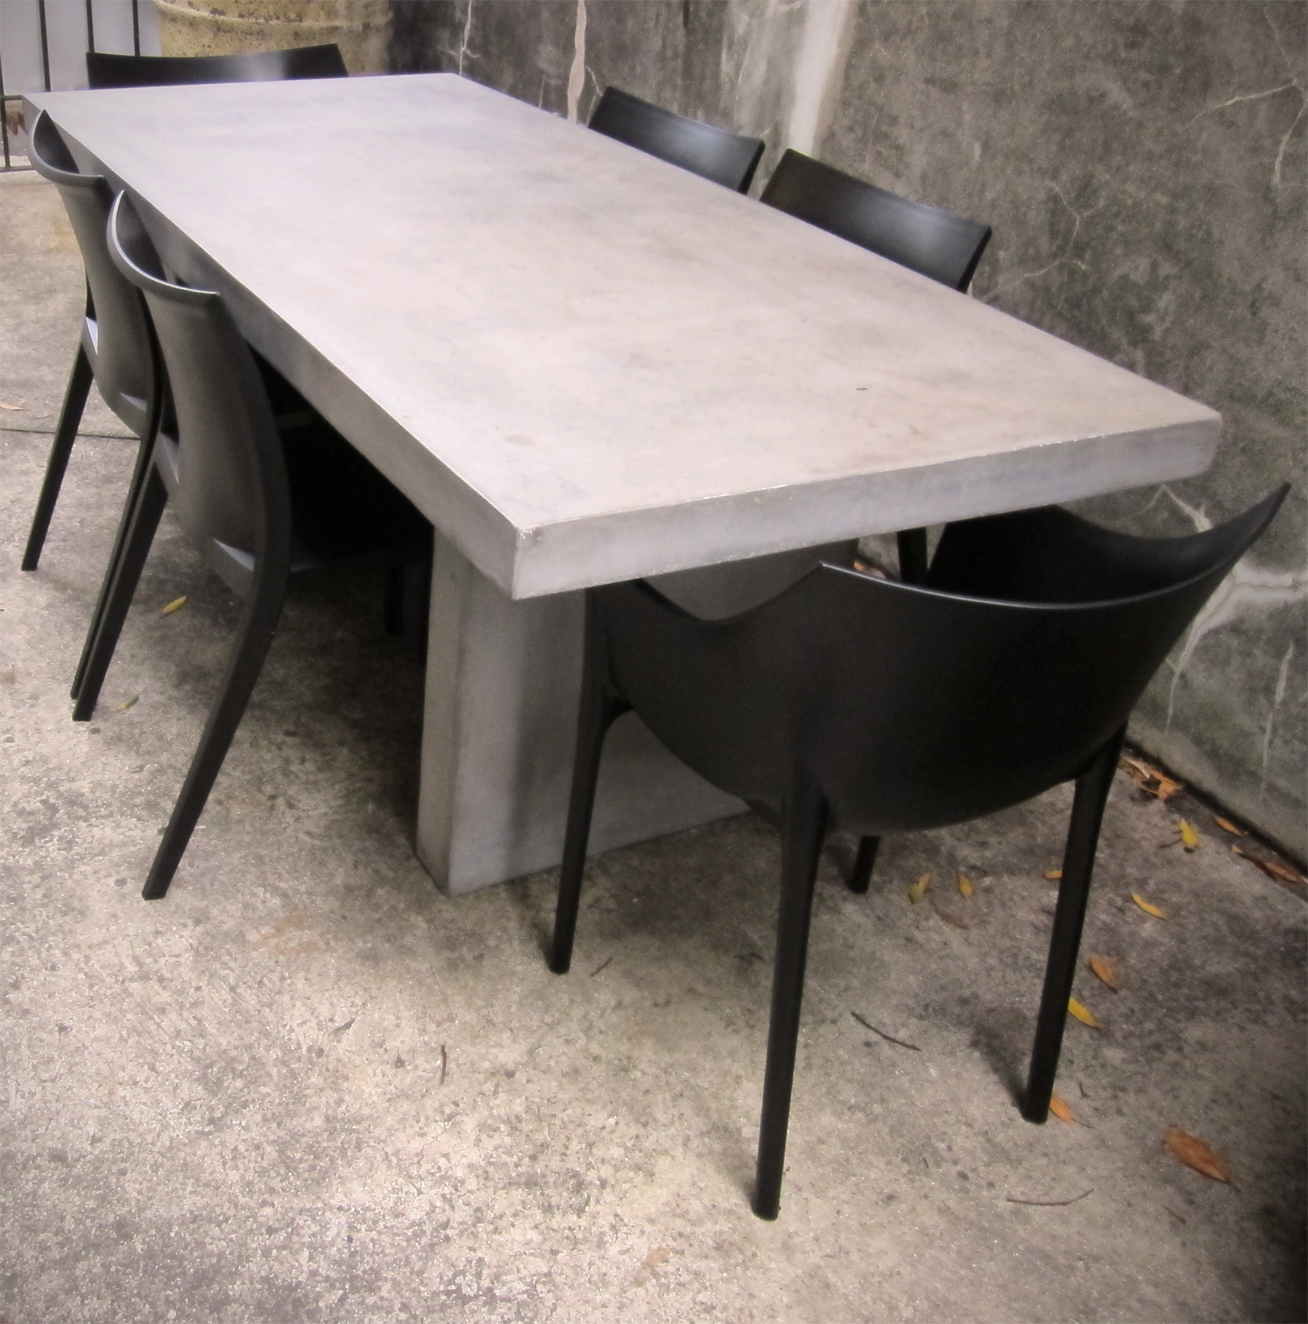 KOKO Classics Reduced to Clear Concrete Outdoor Dining Table